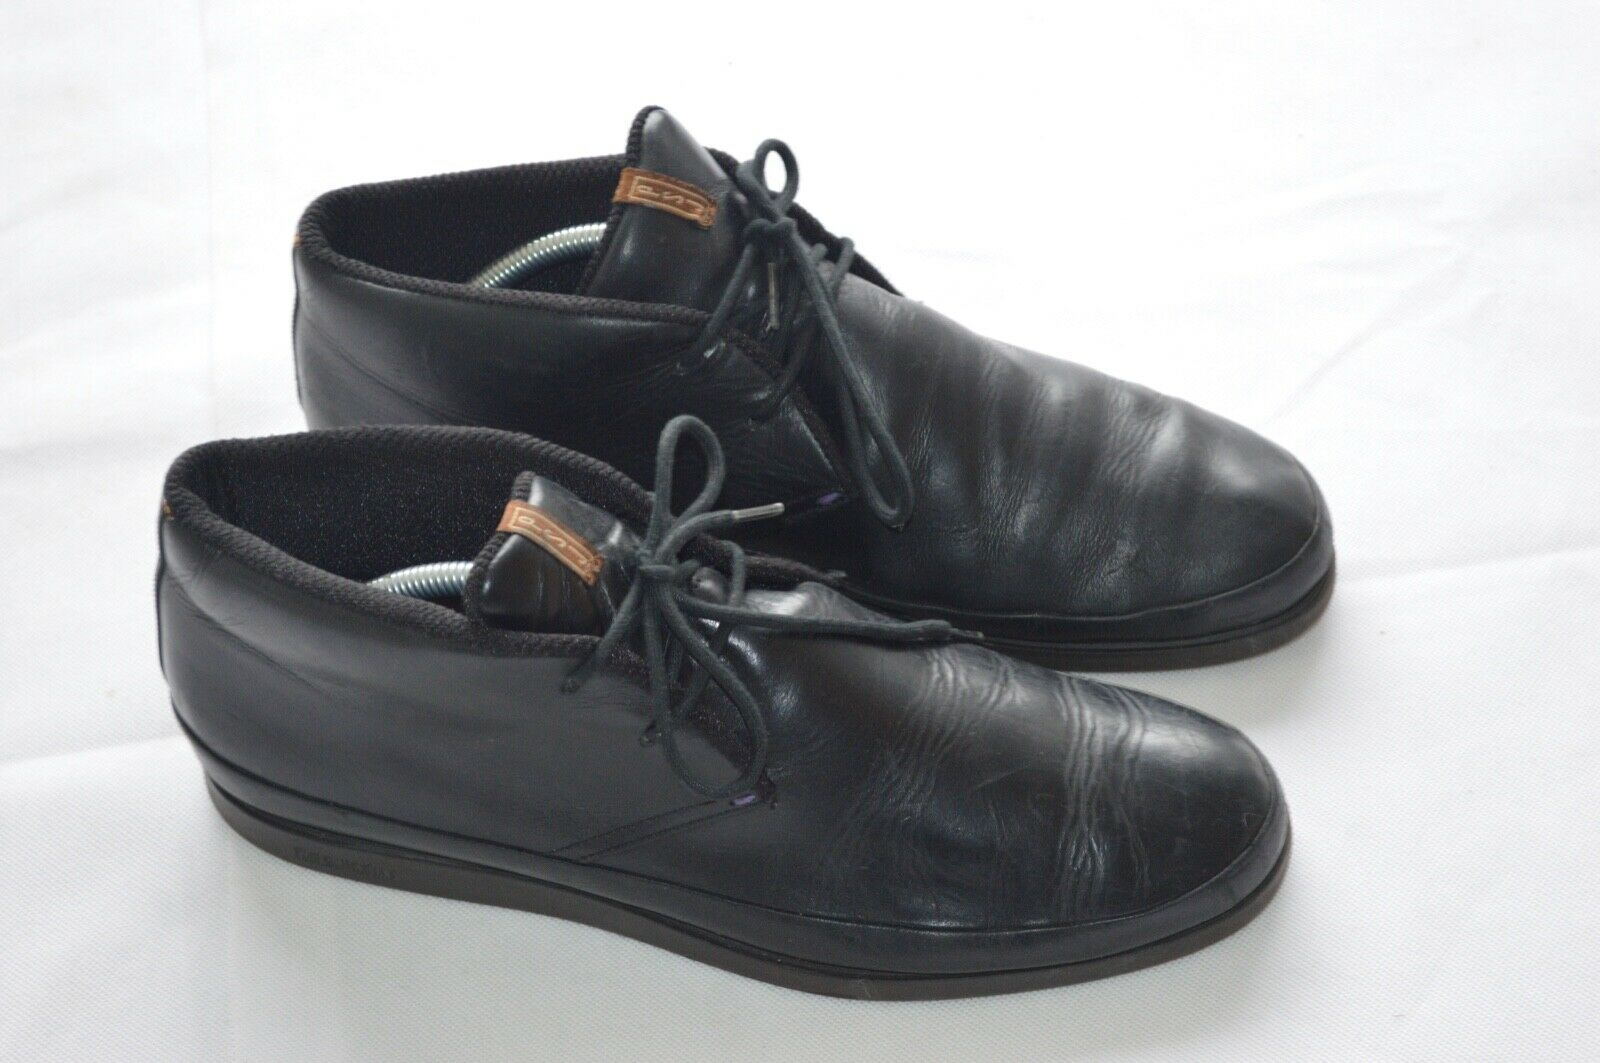 Paul Smith Black Leather Chukka Lace Up Trainers shoes Boots Loomis Mens UK 9 10